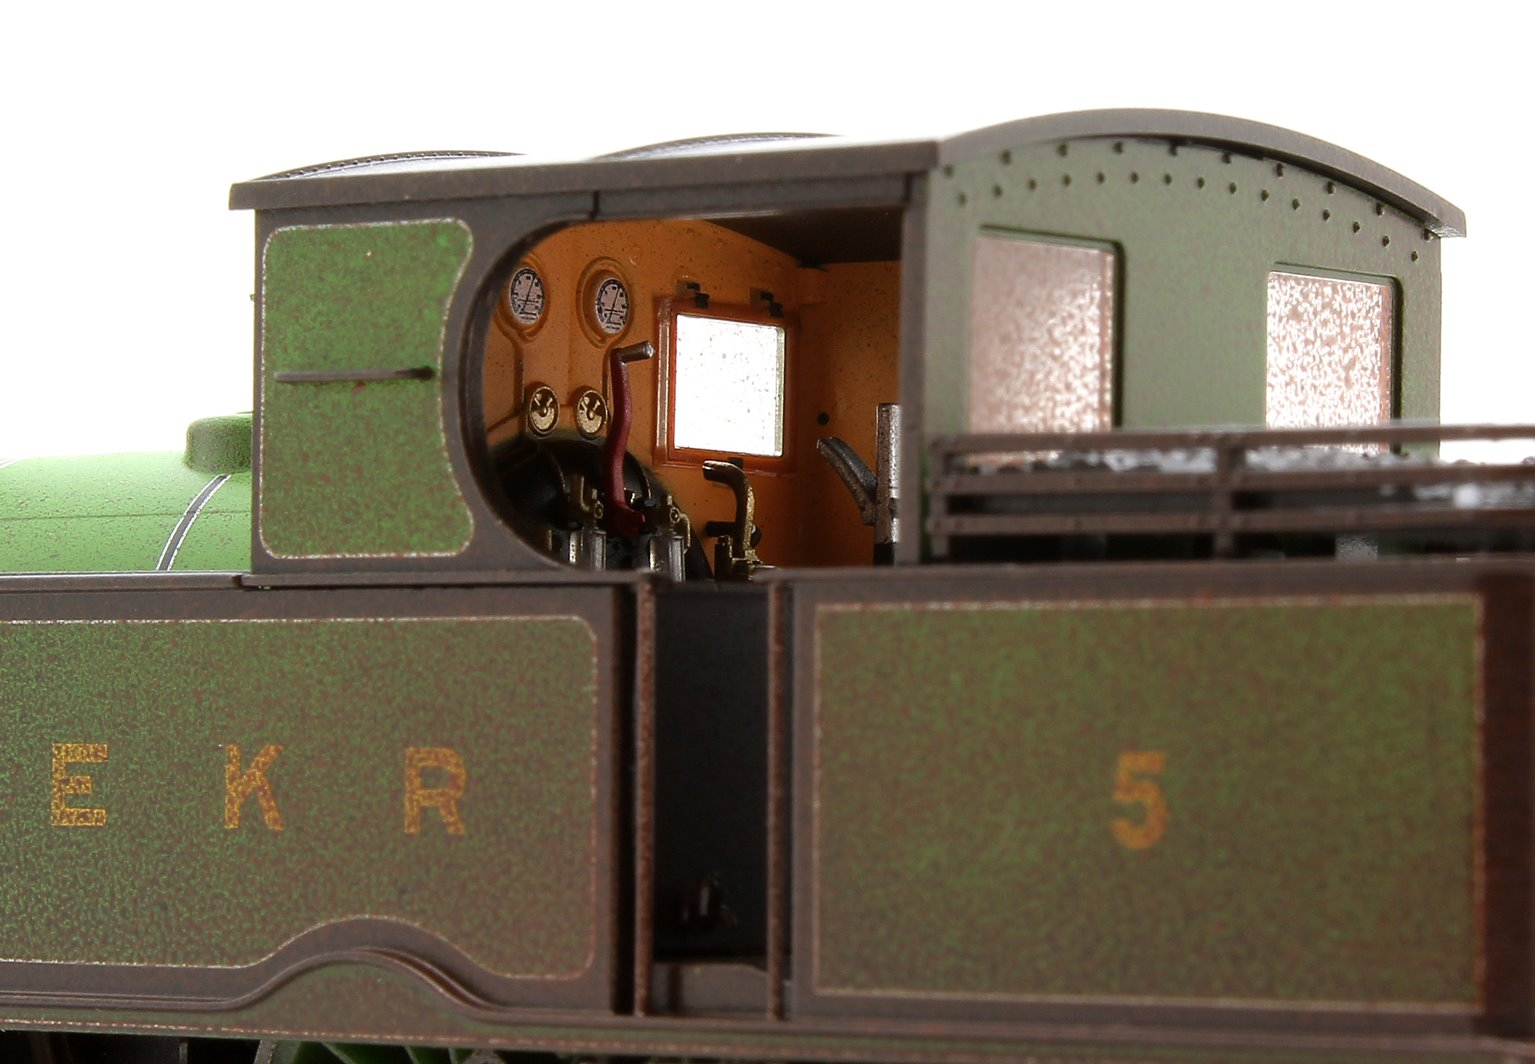 Adams Radial Steam Loco - East Kent Railway Weathered